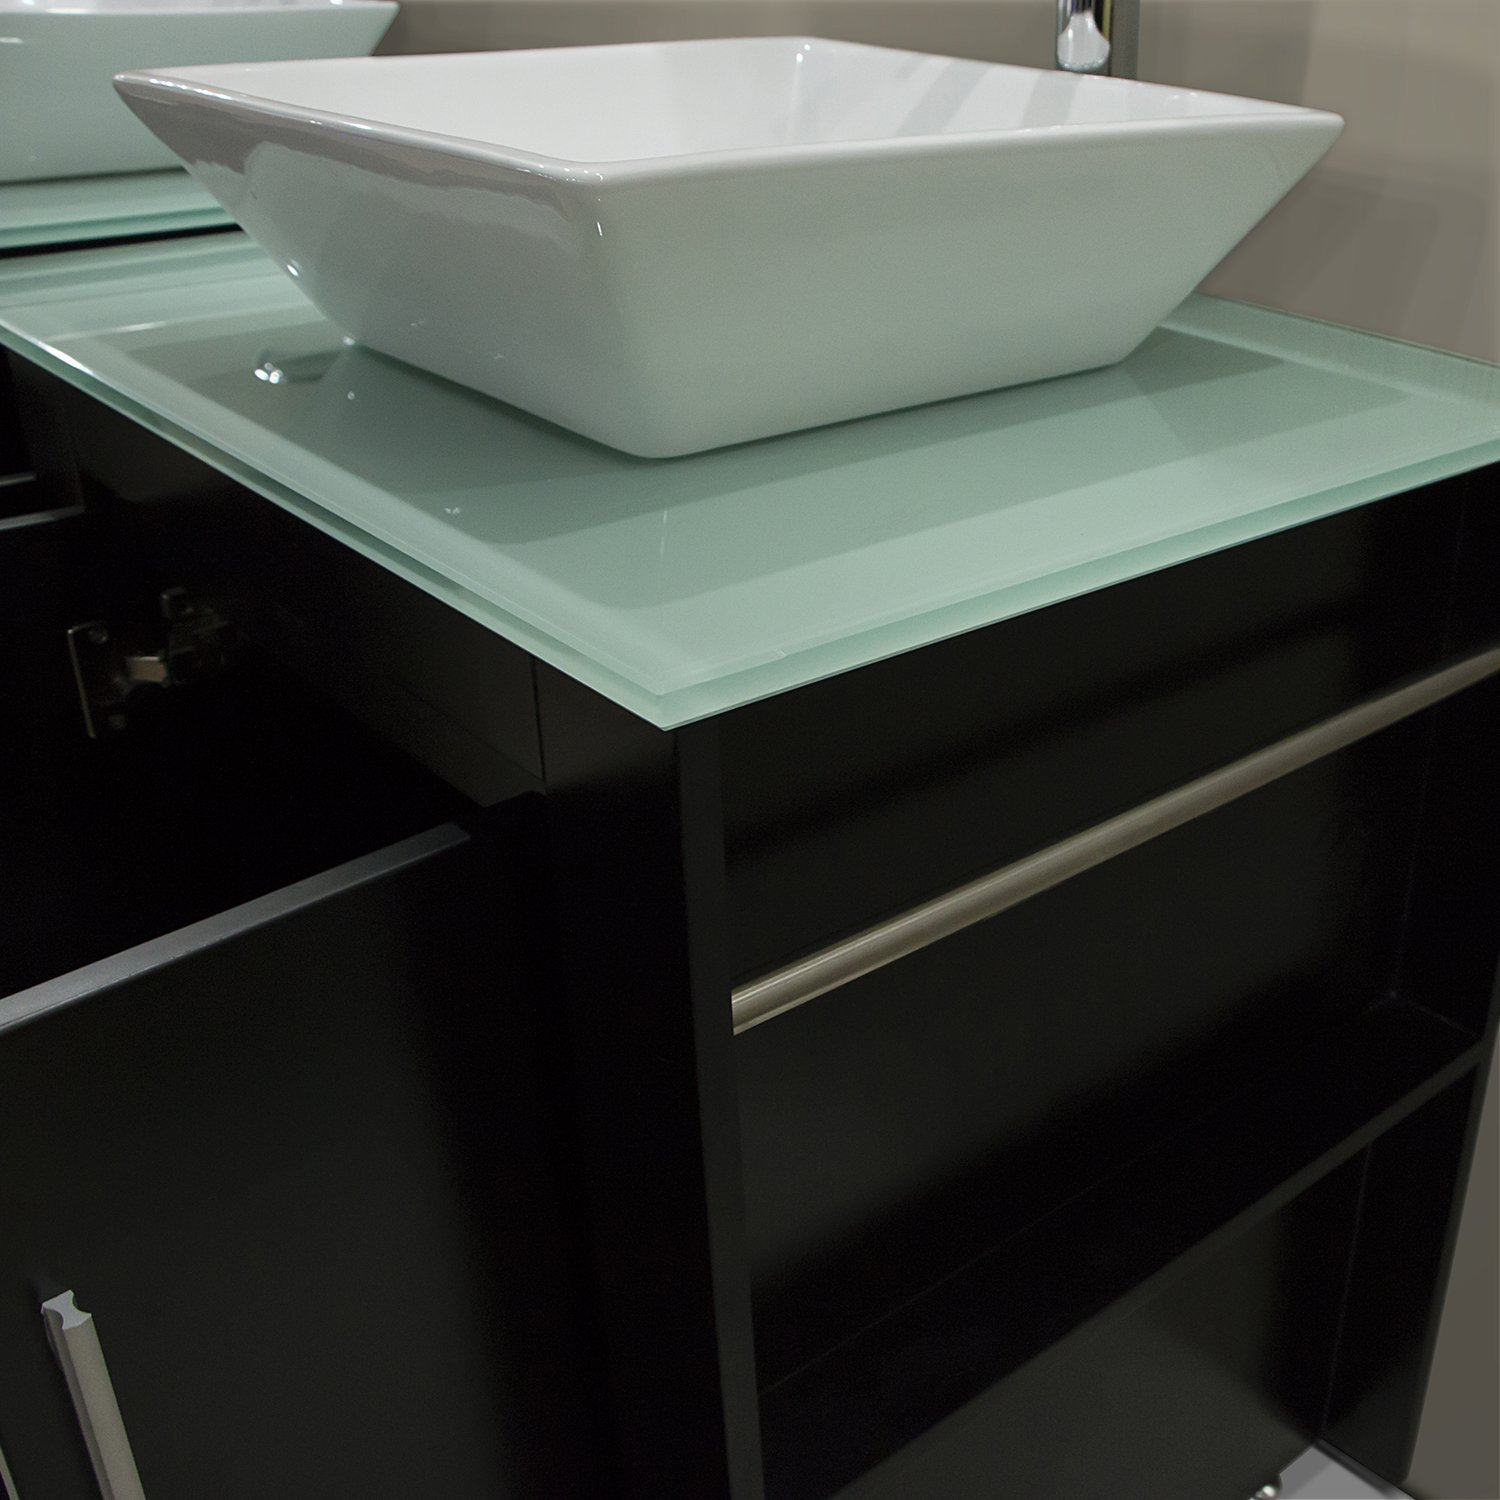 Walcut Luxury 60'' Modern Double Ceramic Sink Solid Wood Bathroom Vanity Cabinet With Mirror And Tempered Glass Table Board by WALCUT (Image #7)